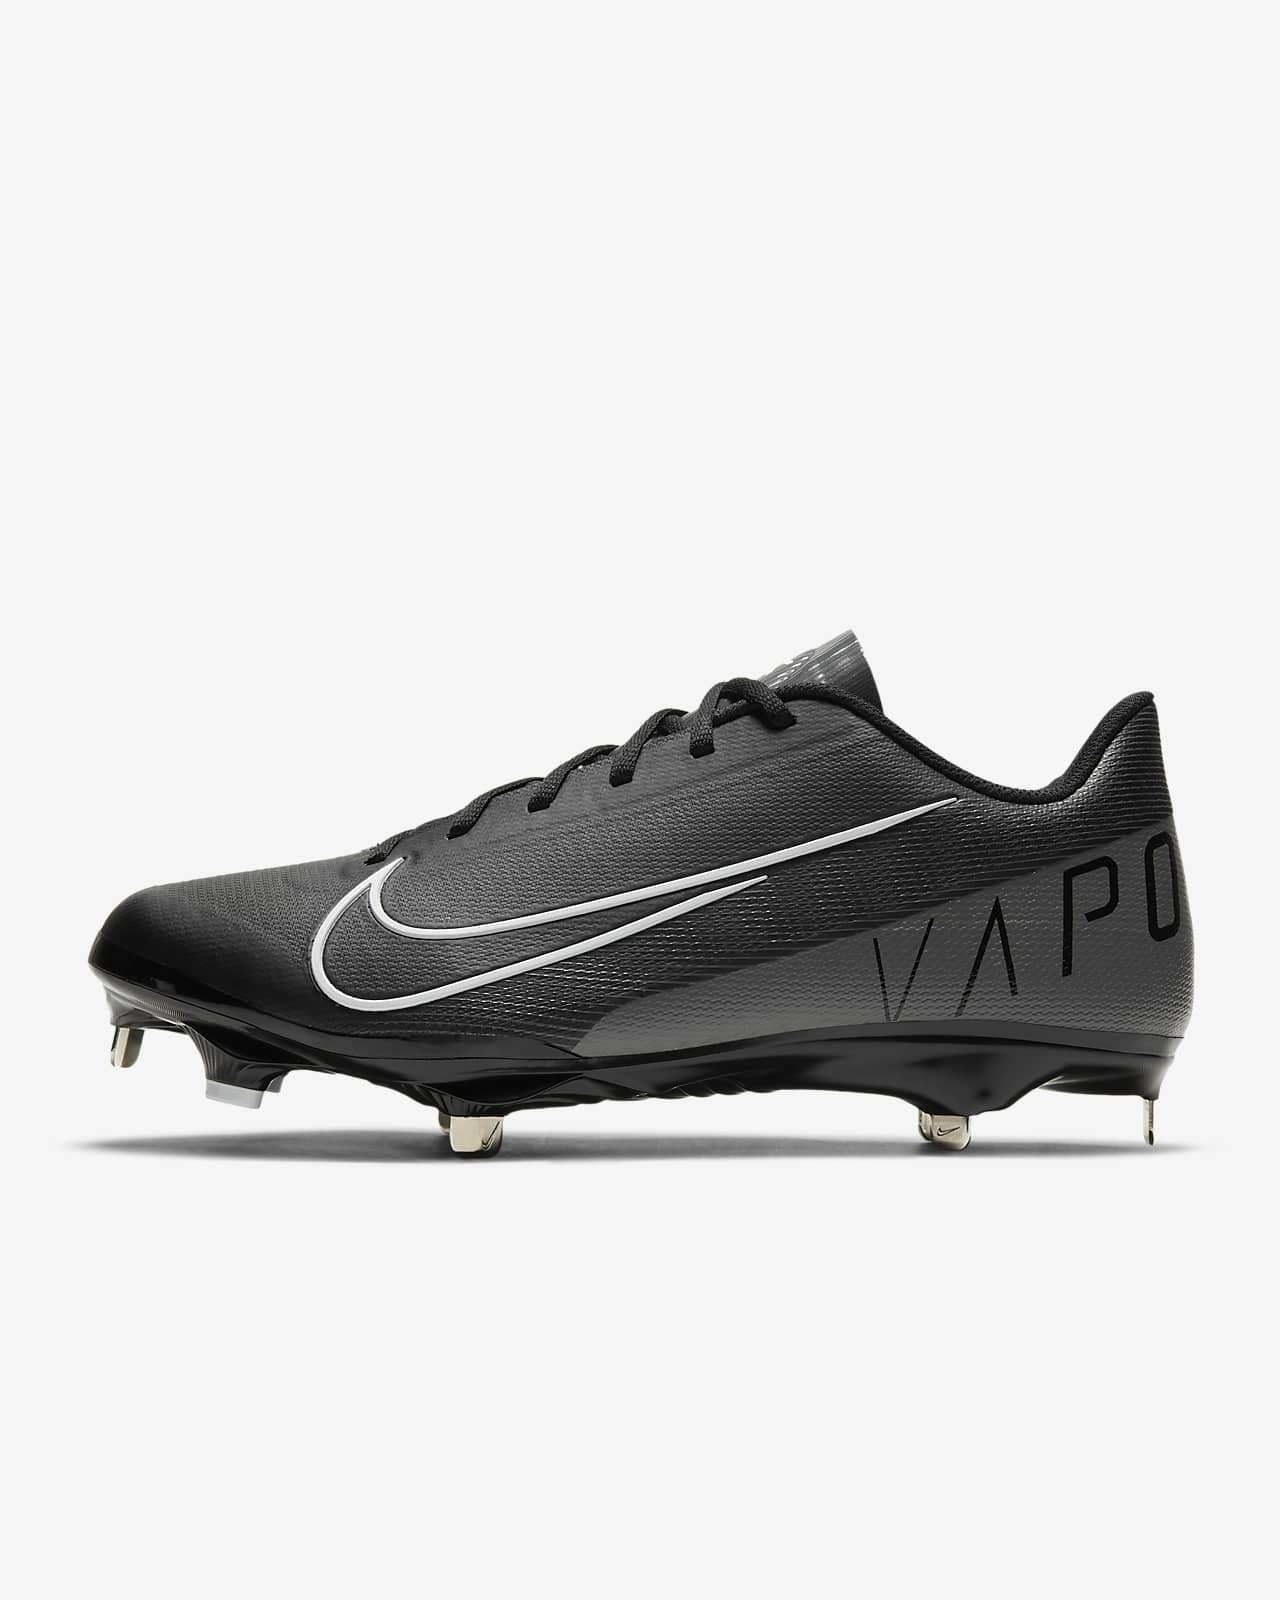 Nike Lunar Vapor Ultrafly Elite 3 Men's Baseball Cleat